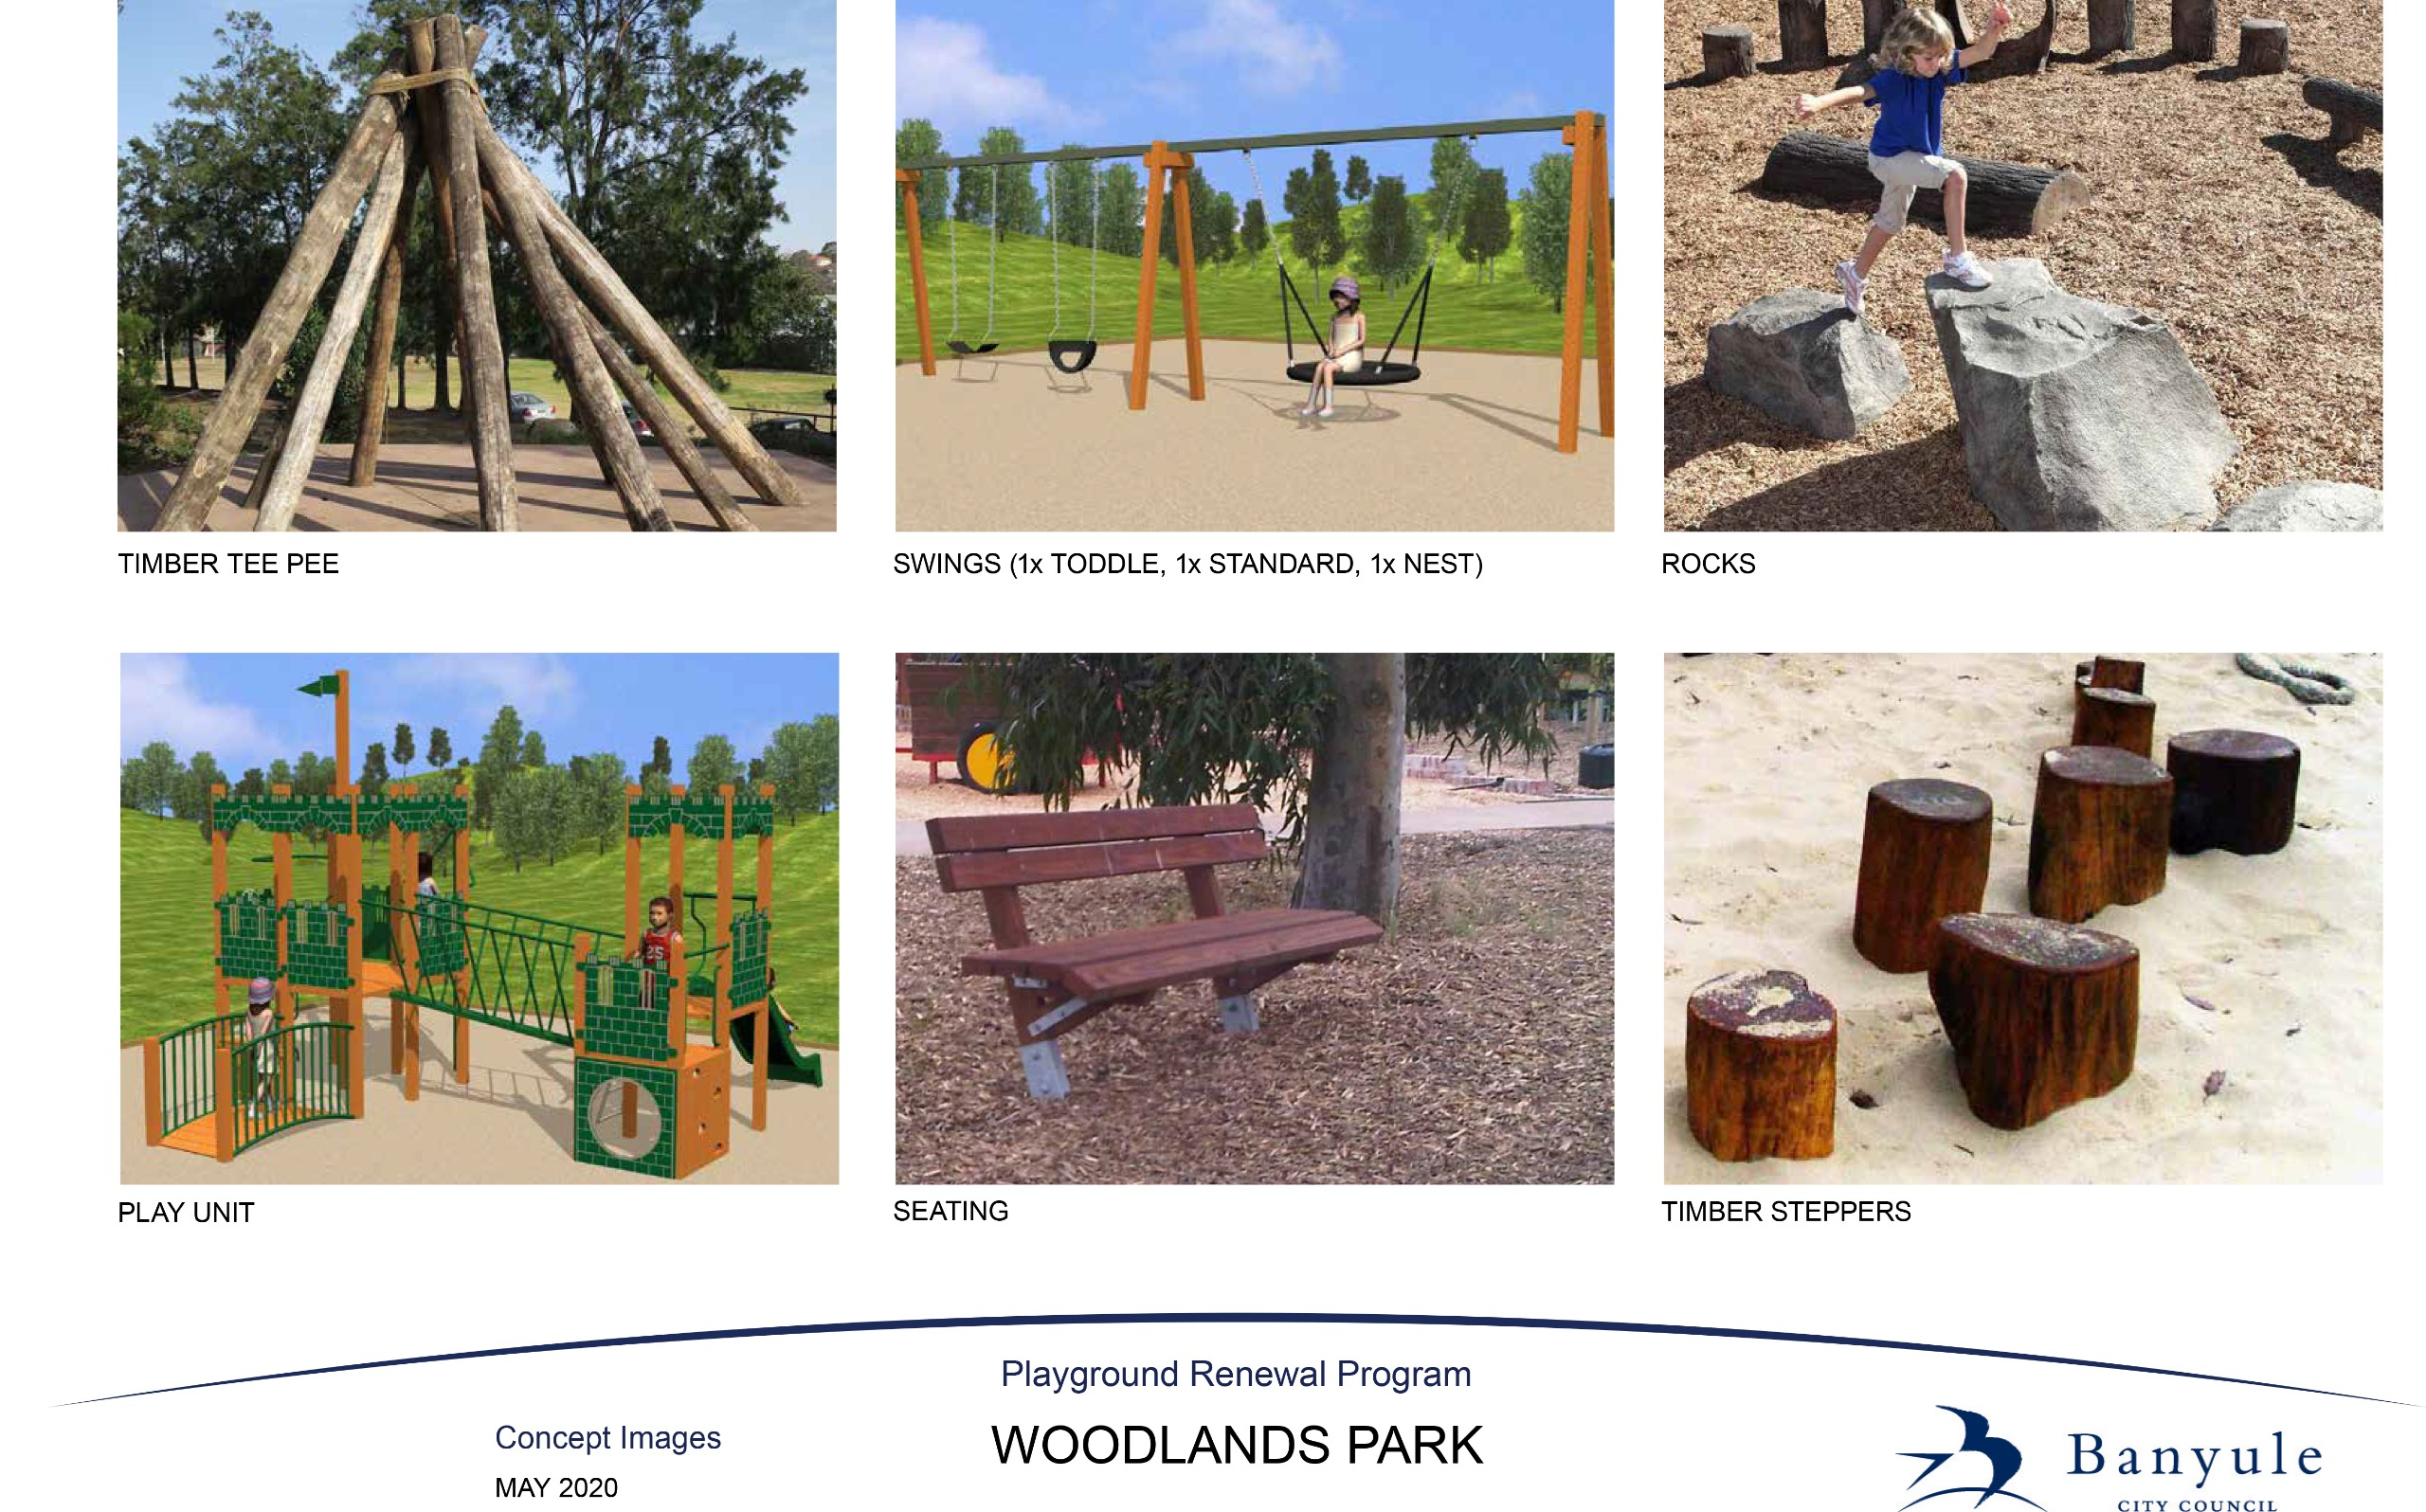 Woodlands Concept Images